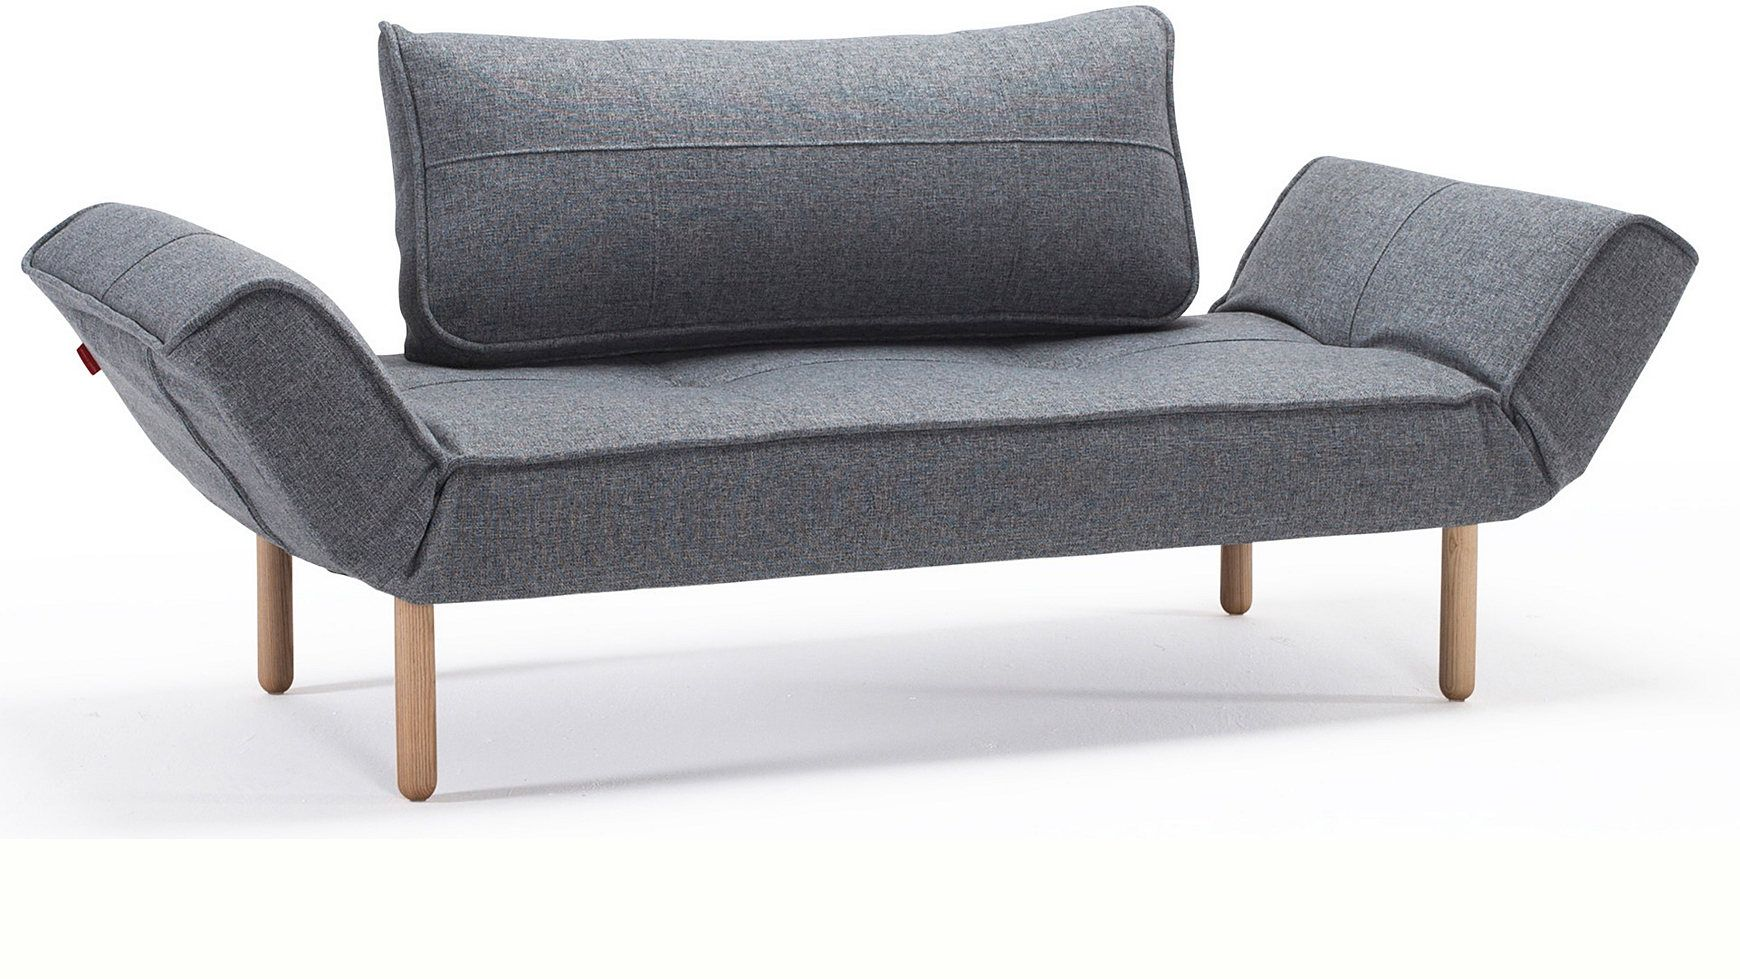 Innovation Schlafsofa Zeal Im Scandinavian Design Styletto Beine